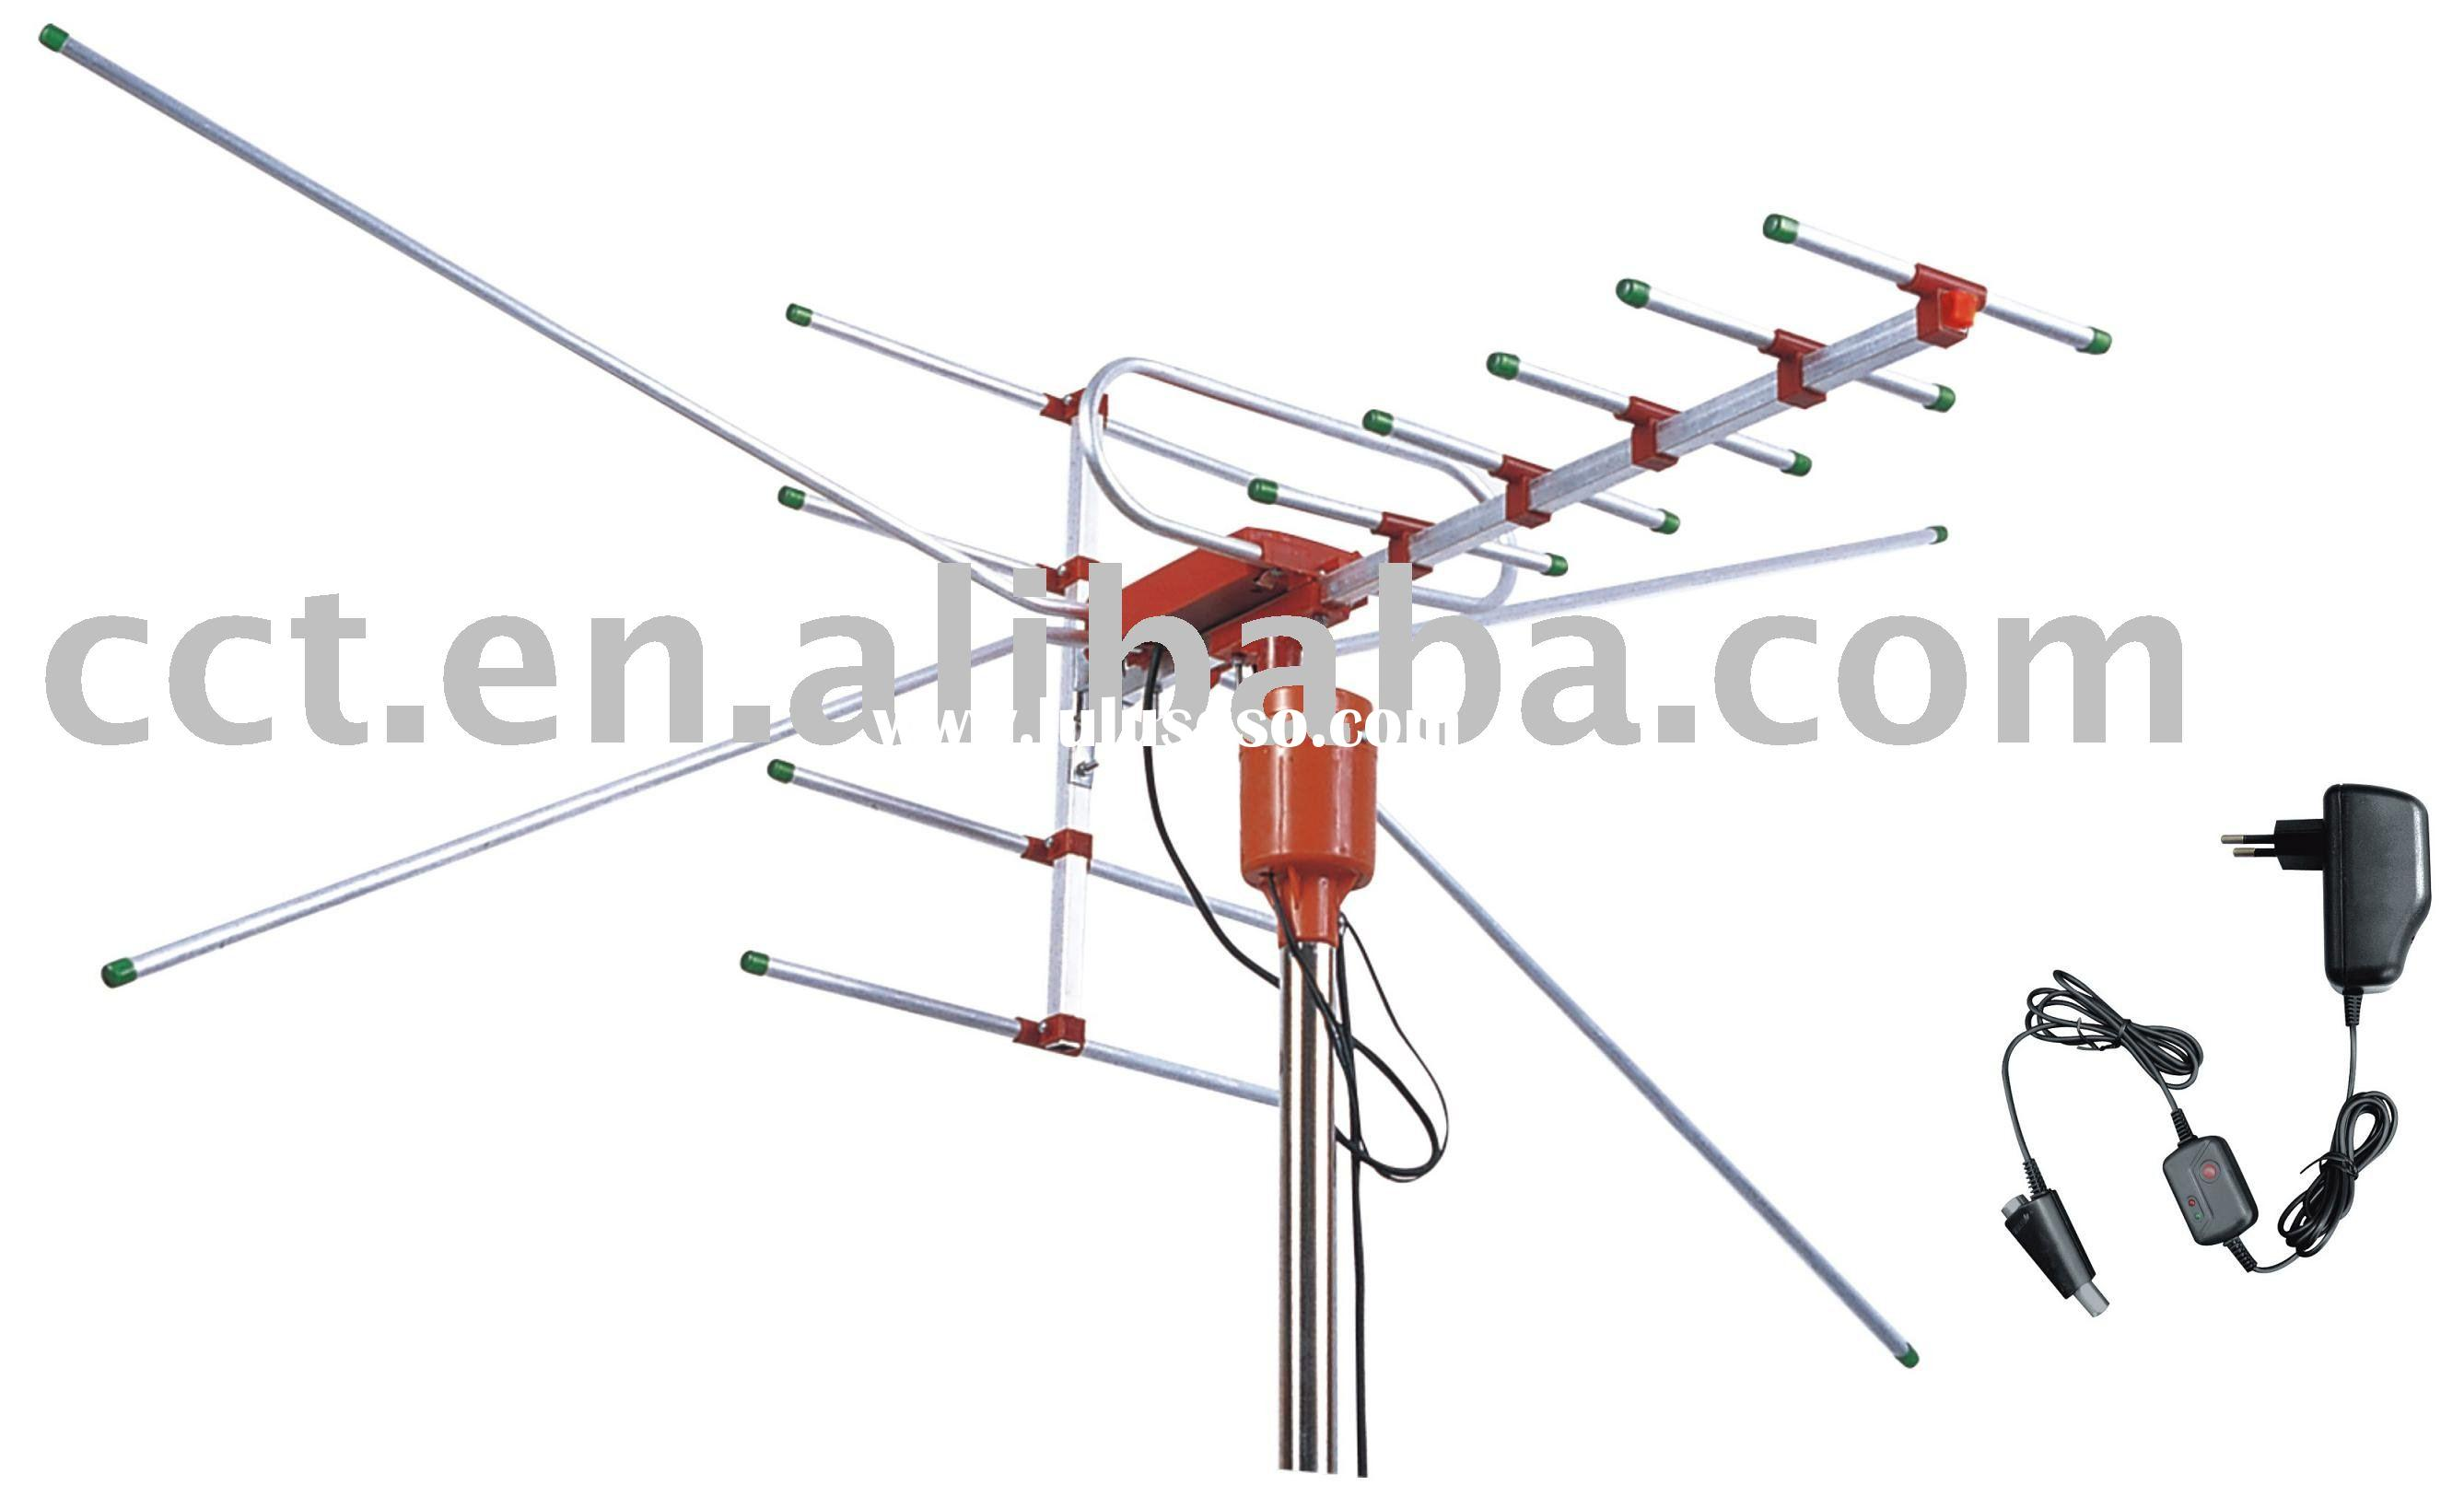 Low Cost Rotating Outdoor TV Antenna Item no. DSY-001